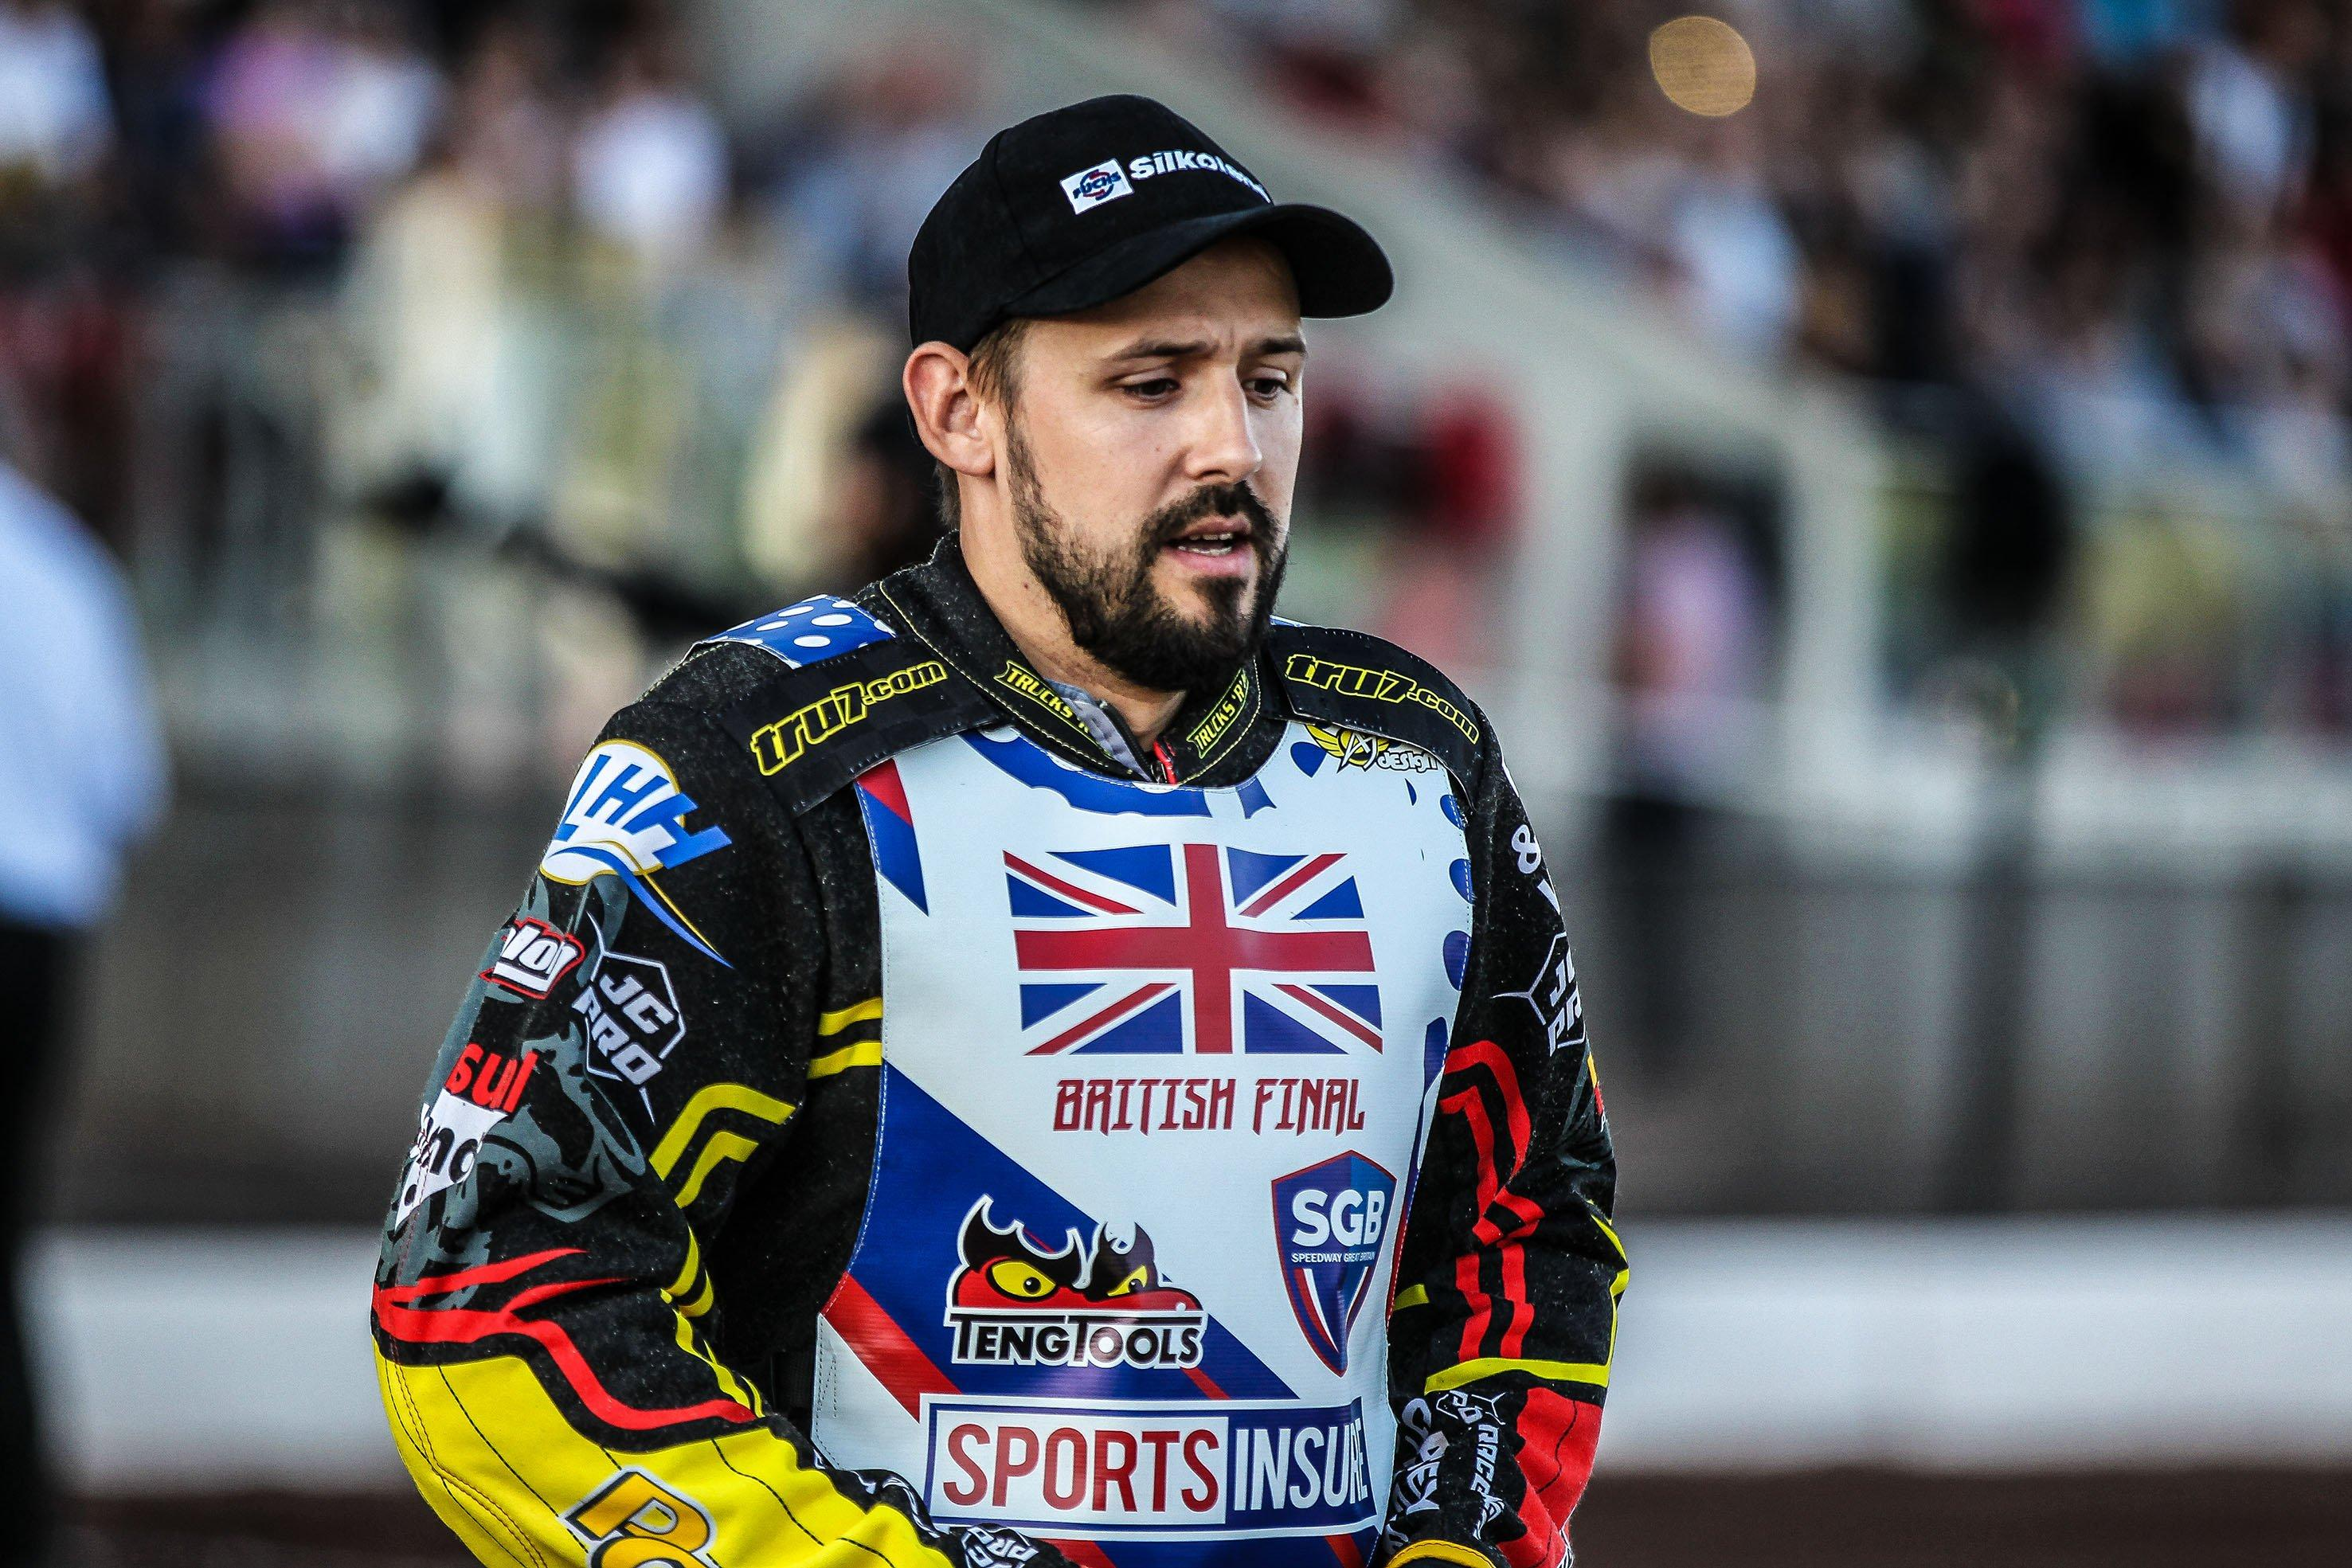 Speedway british final betting line how do you convert money to bitcoins stock